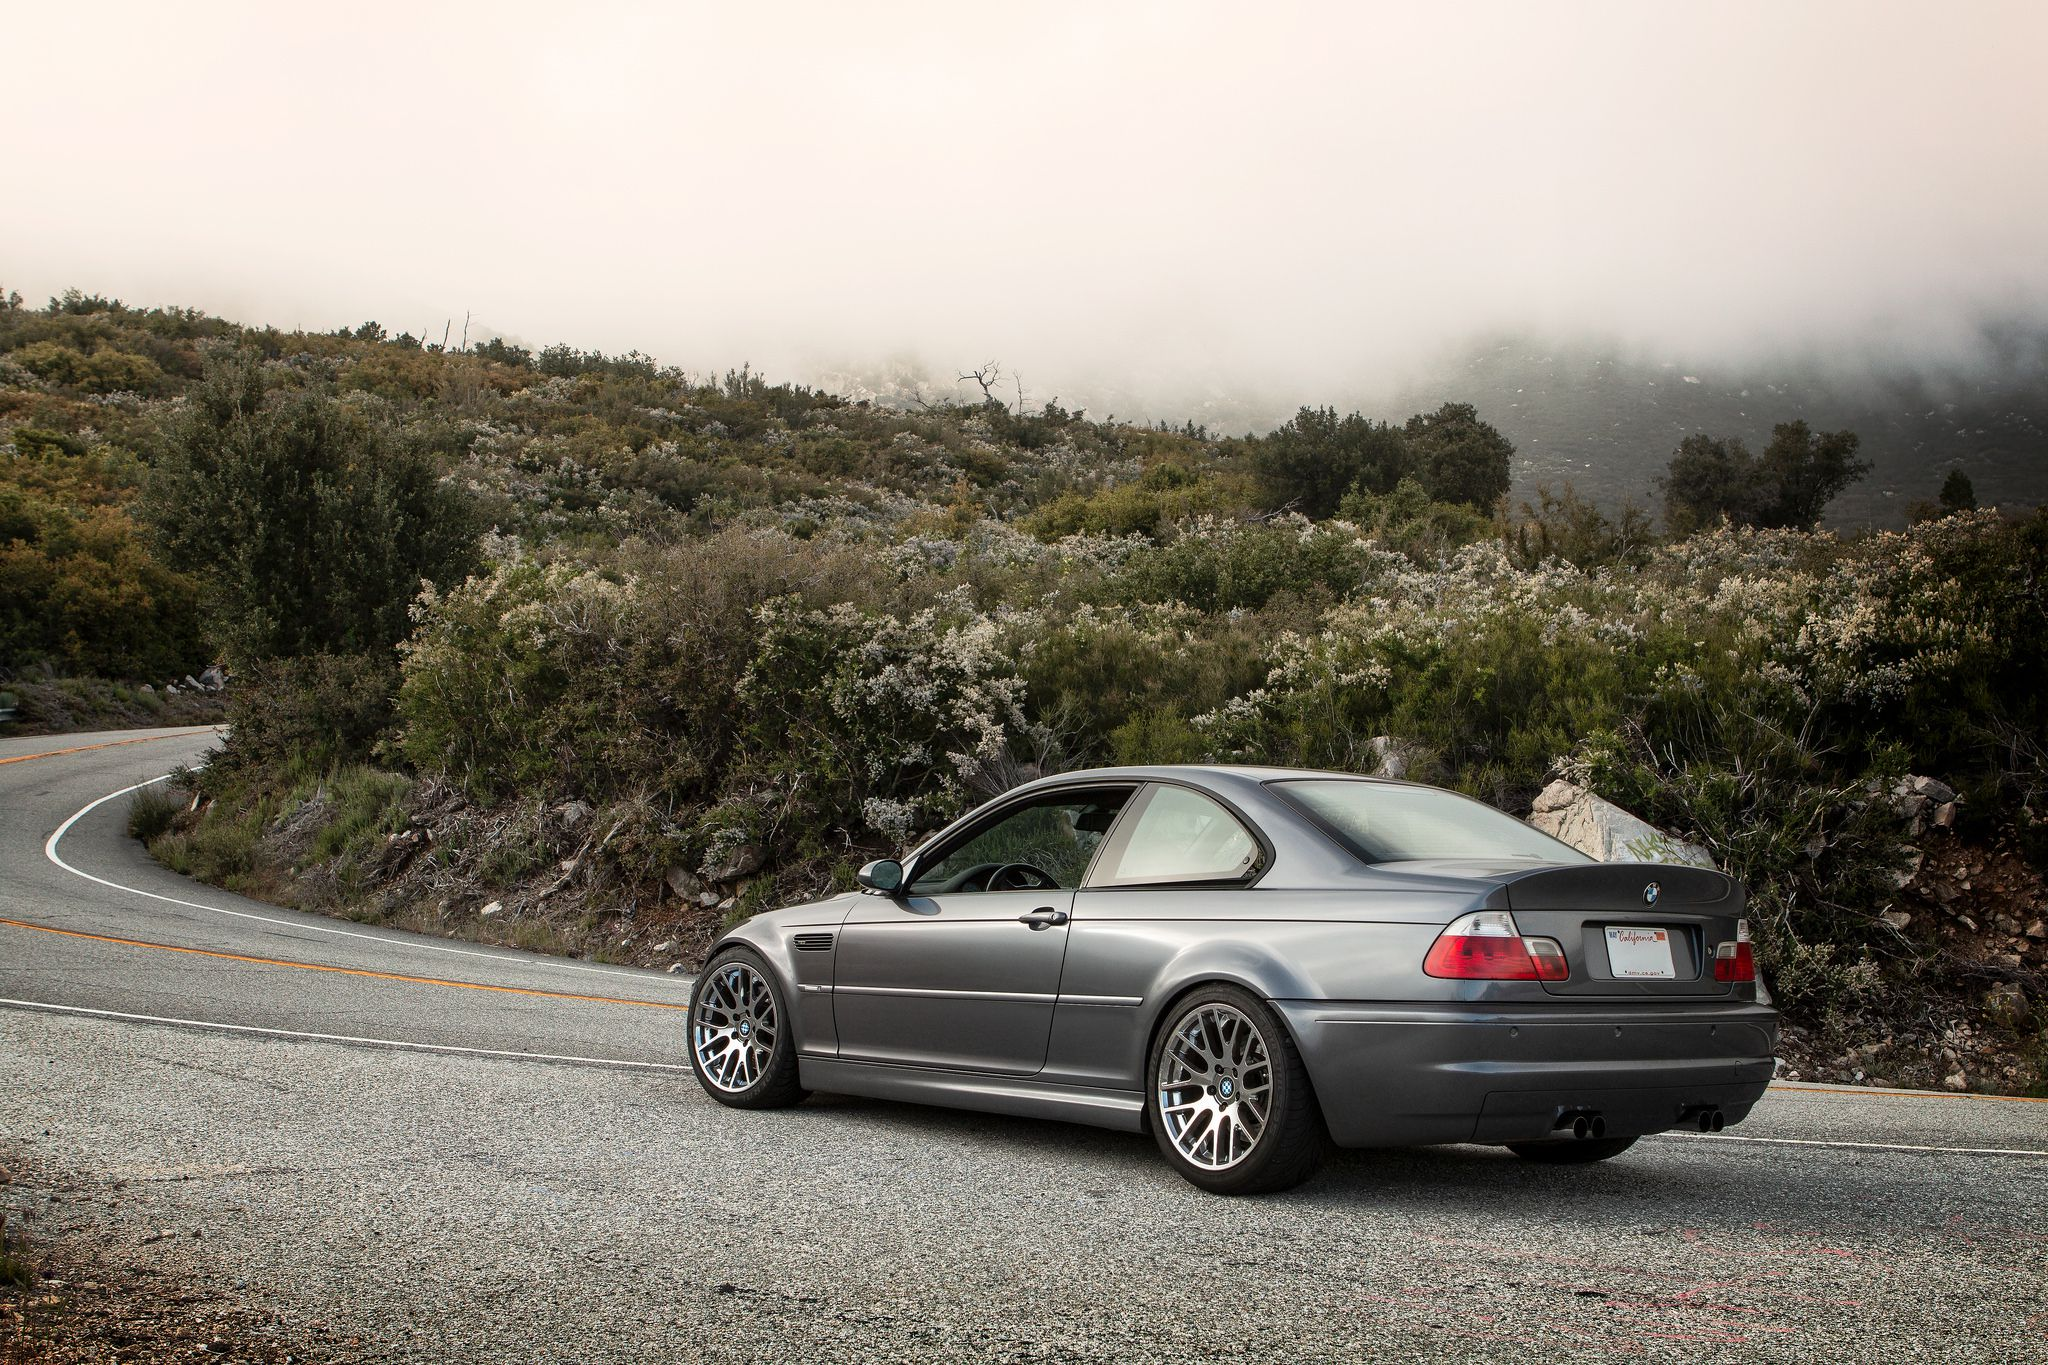 Bmw Car Pictures Wallpapers Bmw M3 E46 11 Wallpapers In Hd